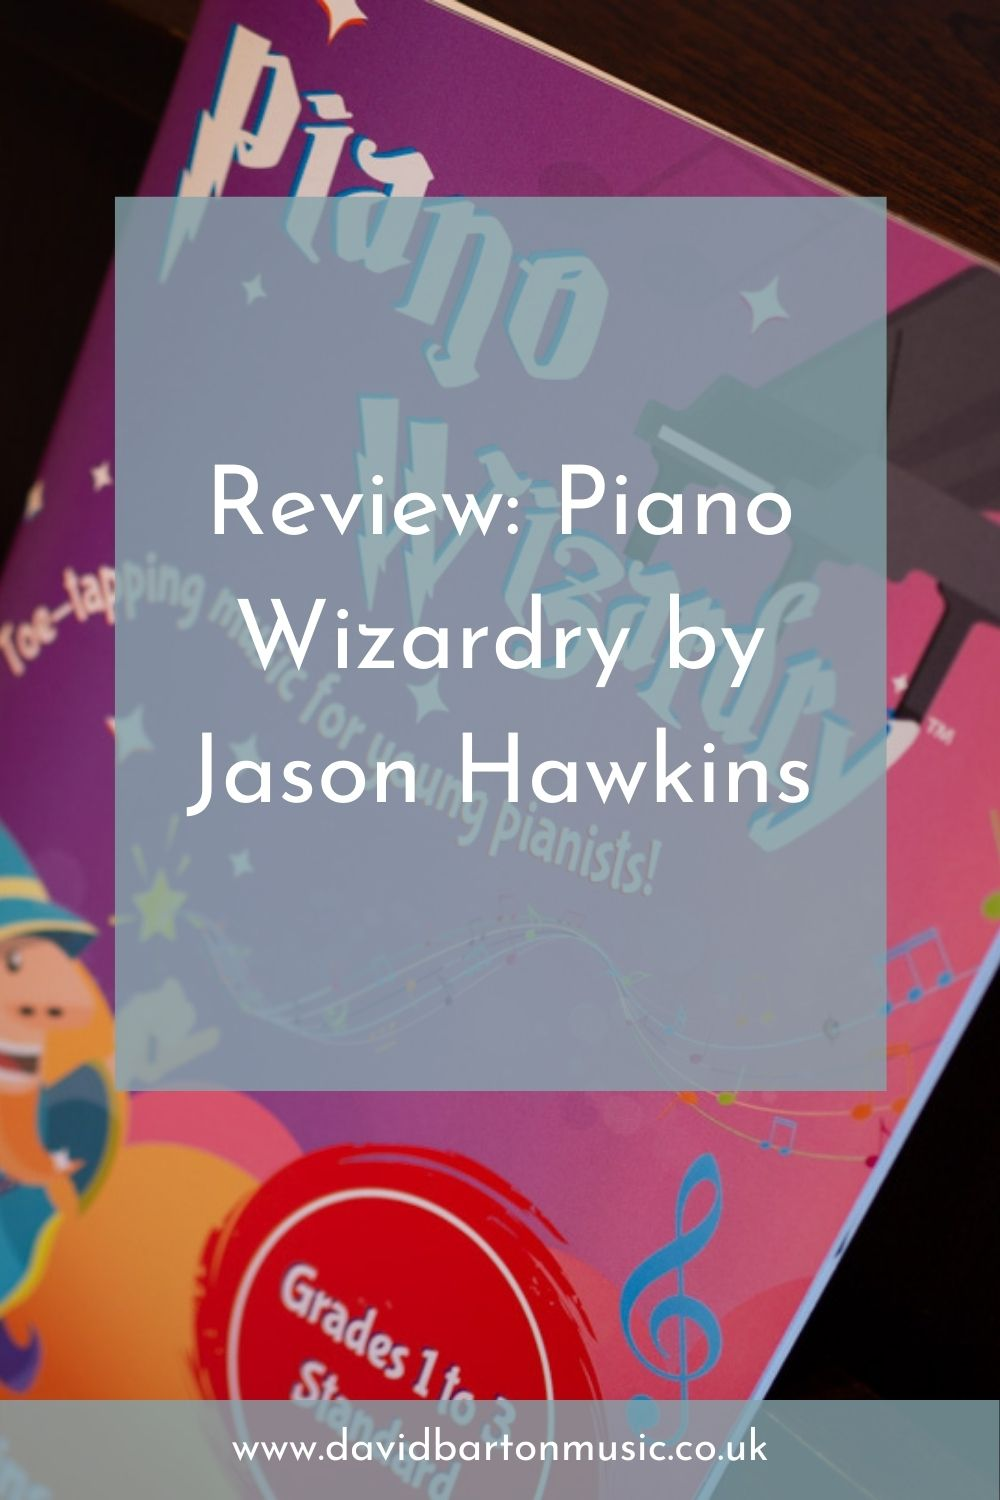 Review: Piano Wizardry by Jason Hawkins - Pinterest Graphic